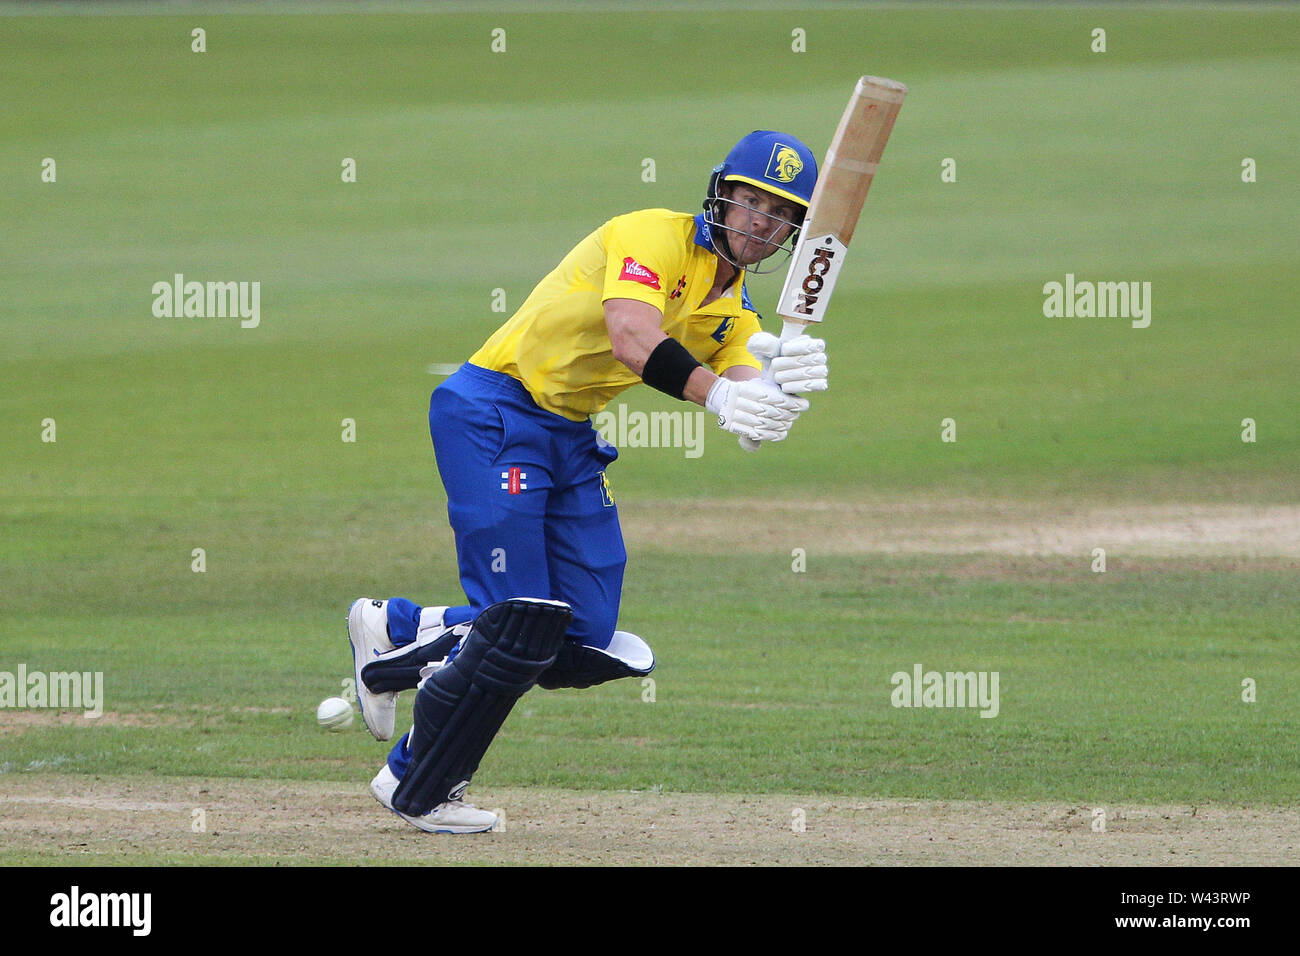 CHESTER LE STREET, ENGLAND 19th July 2019. 2019. D'arcy Short fo Durham batting during the Vitality T20 Blast match between Durham County Cricket Club and Northamptonshire County Cricket Club at Emirates Riverside, Chester le Street on Friday 19th July 2019. (Credit: Mark Fletcher   MI News ) Credit: MI News & Sport /Alamy Live News - Stock Image